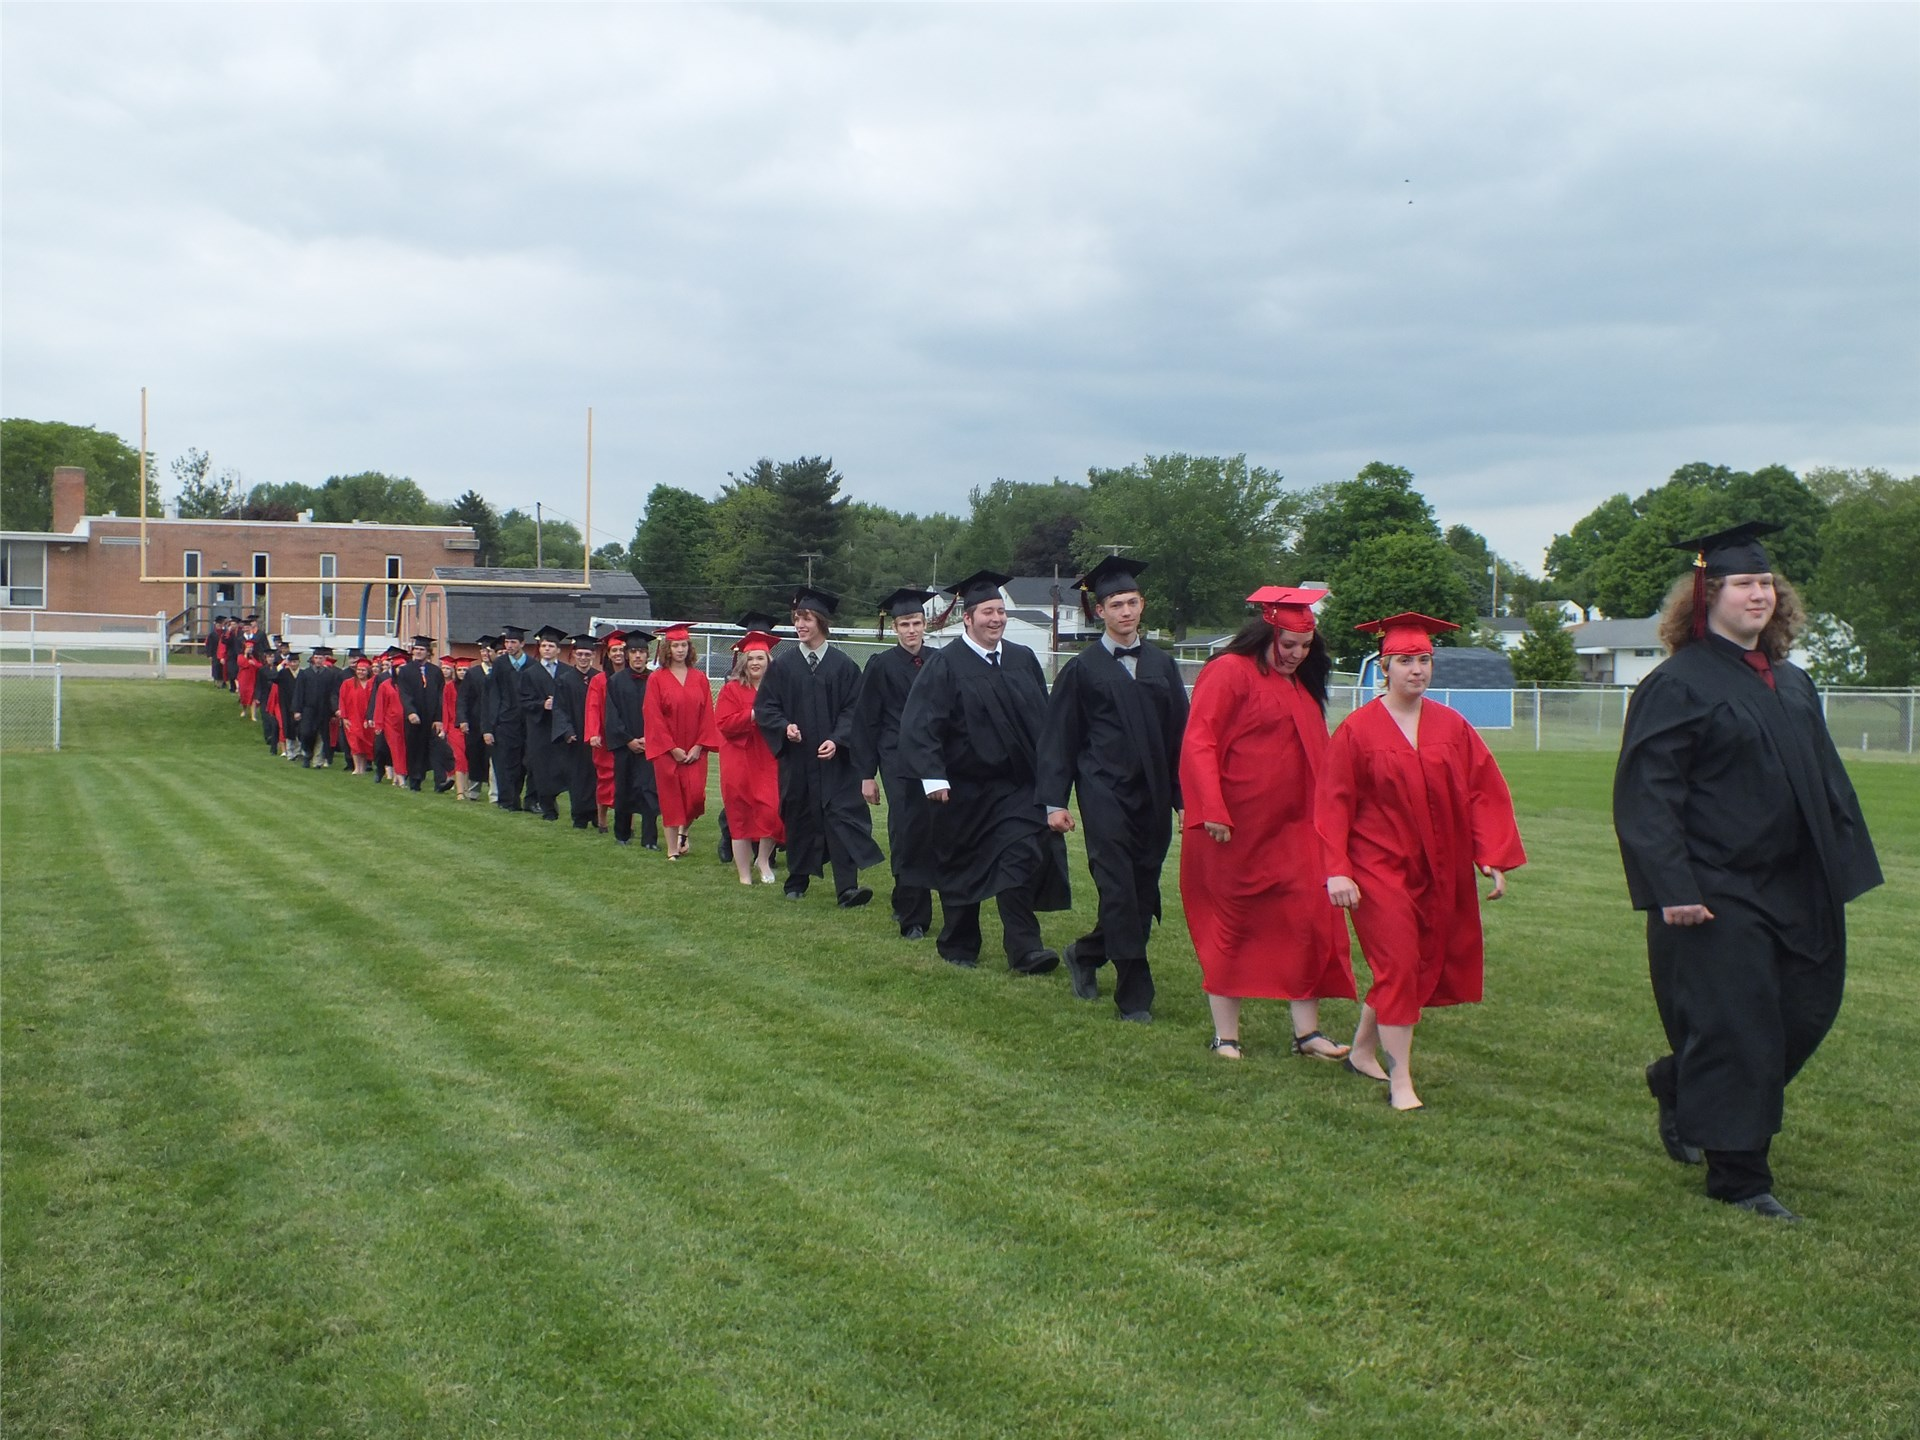 Foxfire High School - Class of 2015 Graduation.